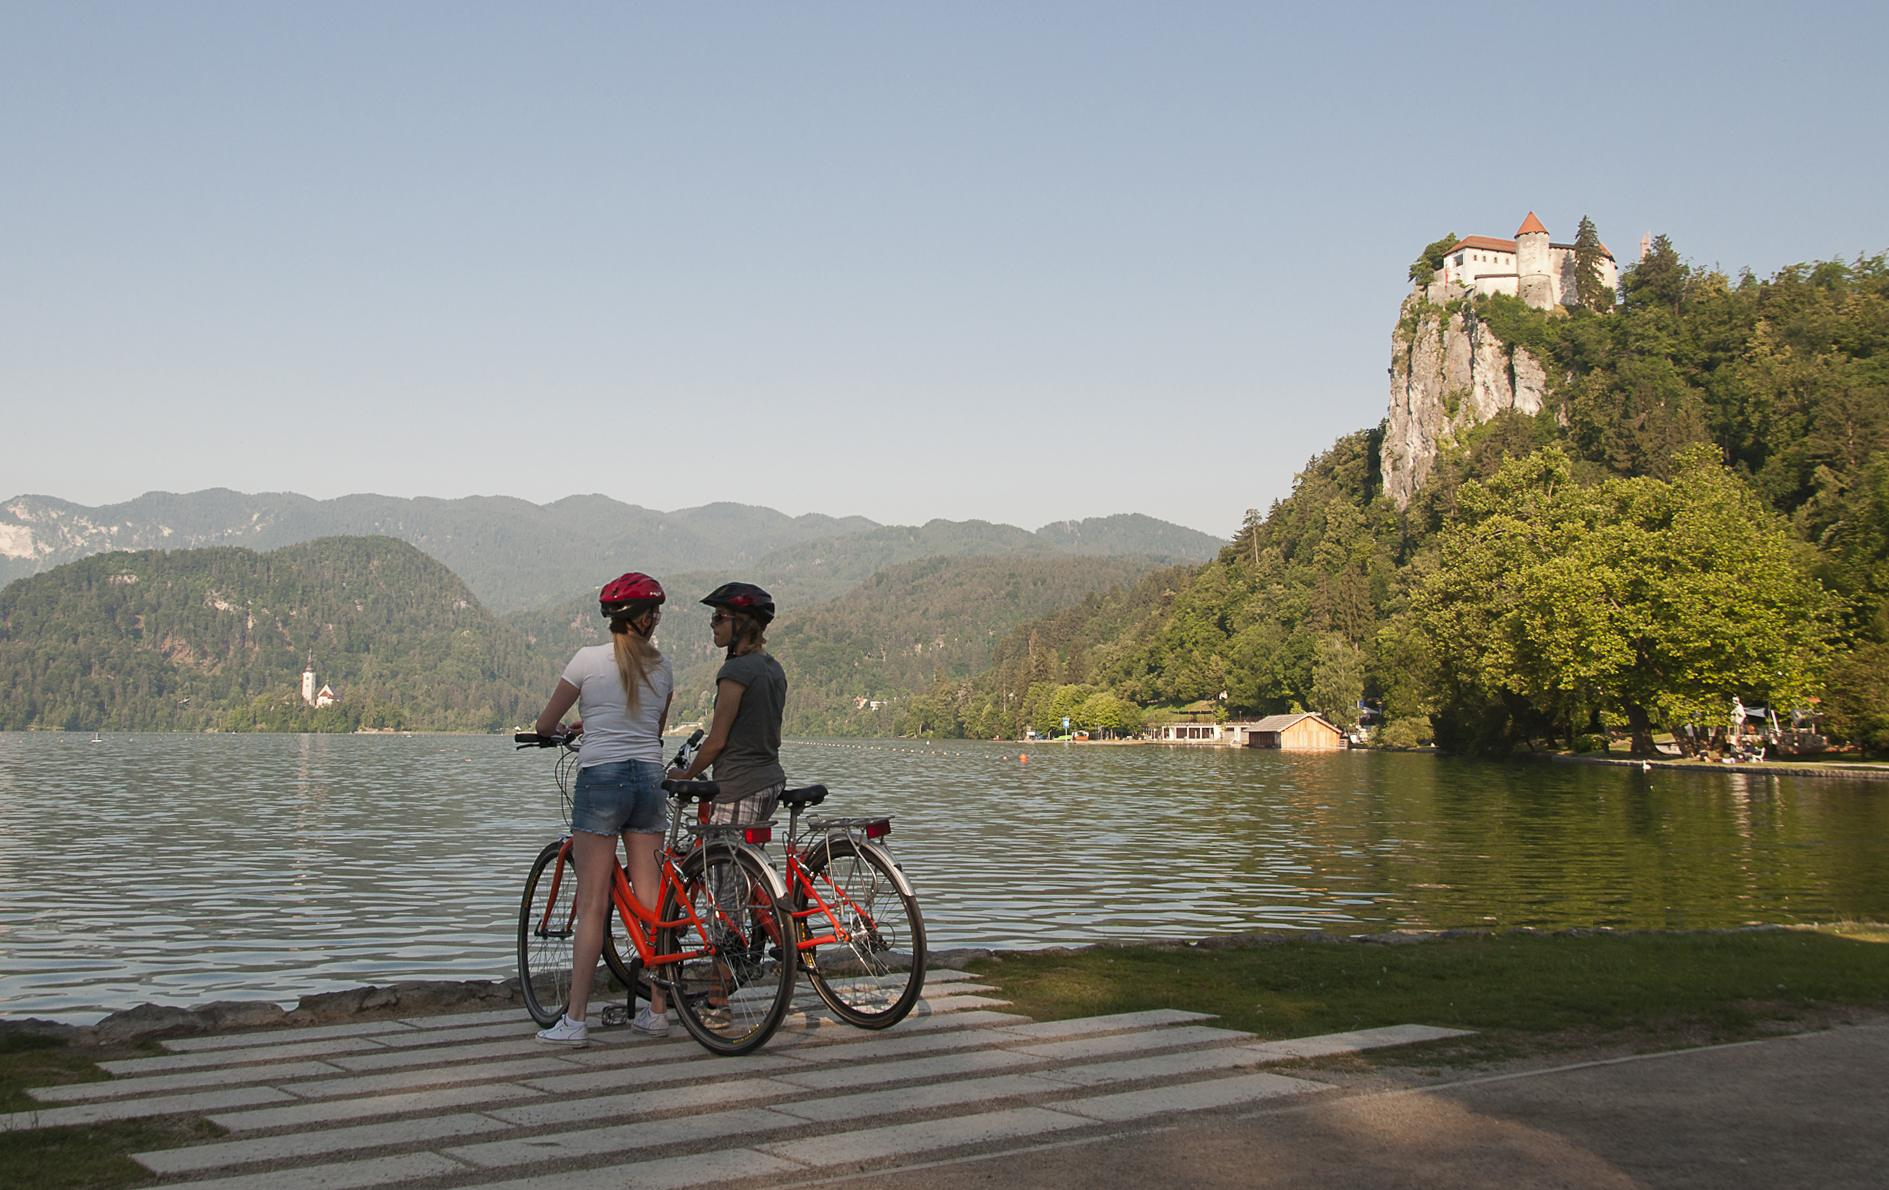 Lakes & cities cycling tour in Slovenia: Cycle Bled to Ljubljana